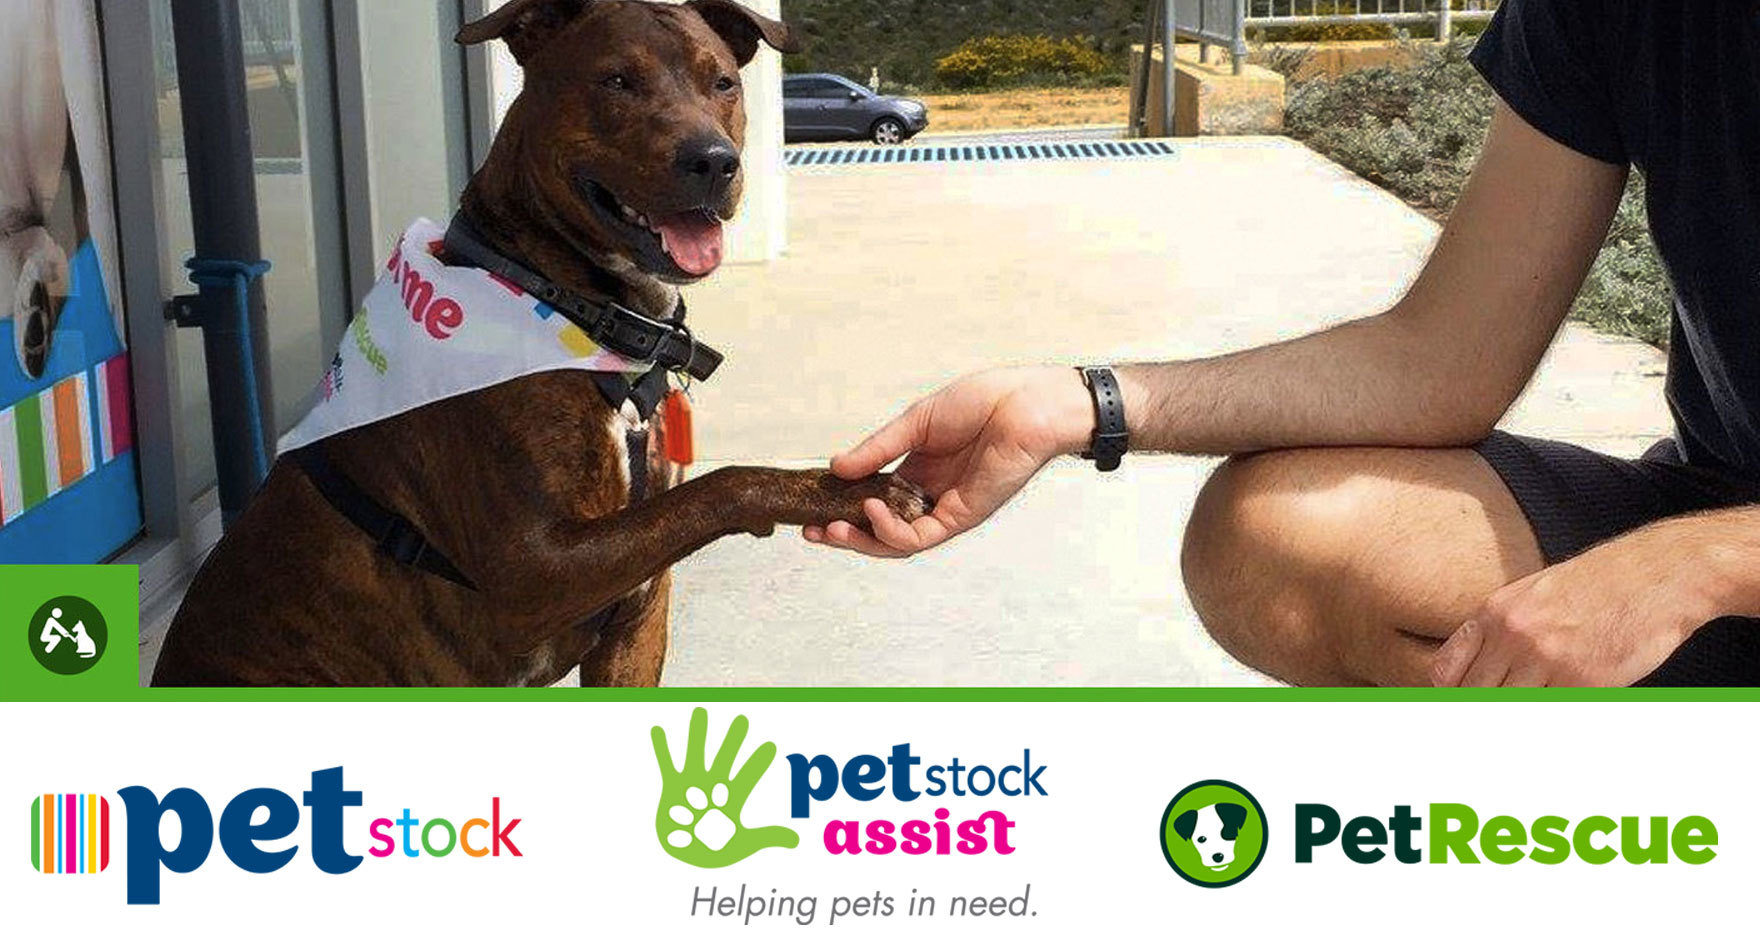 Petstock National Pet Adoption Day 2018 PetRescue